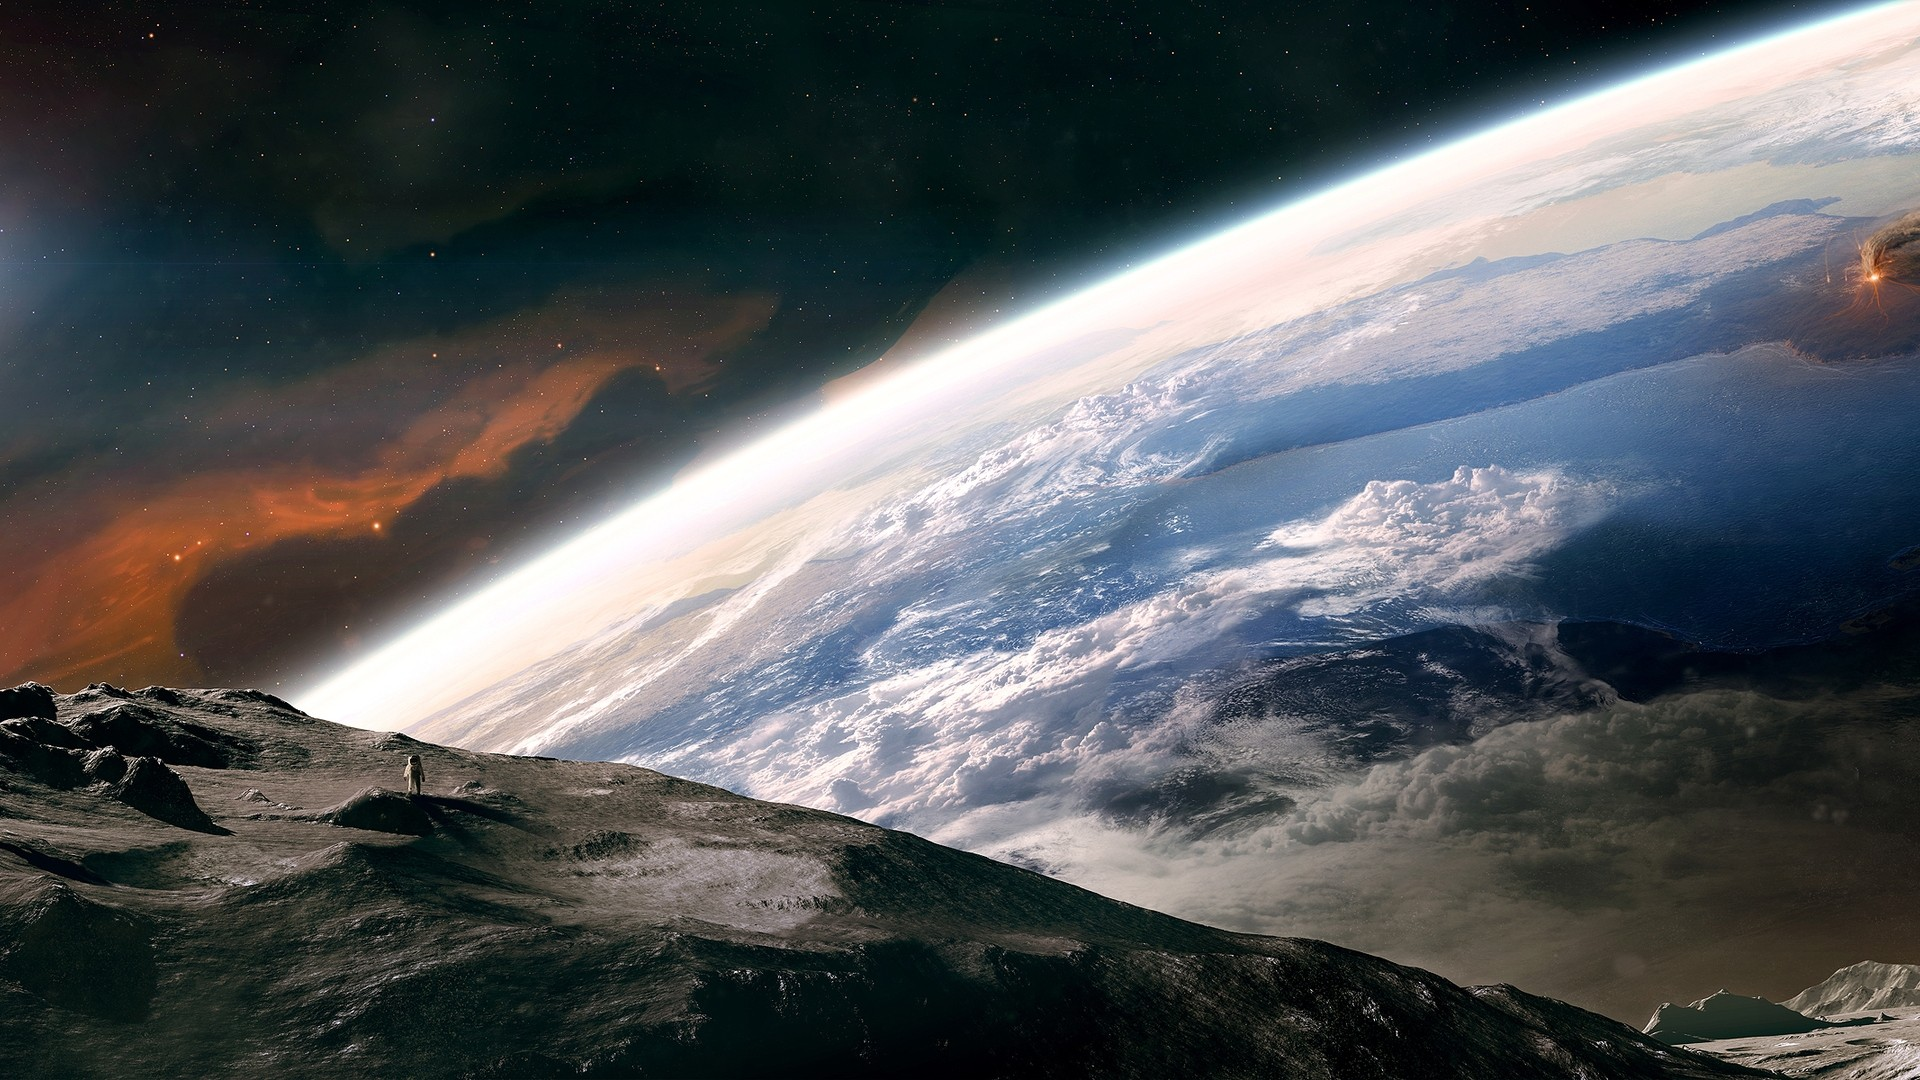 space-expedition-1920×1080-wallpaper-5304.jpg …